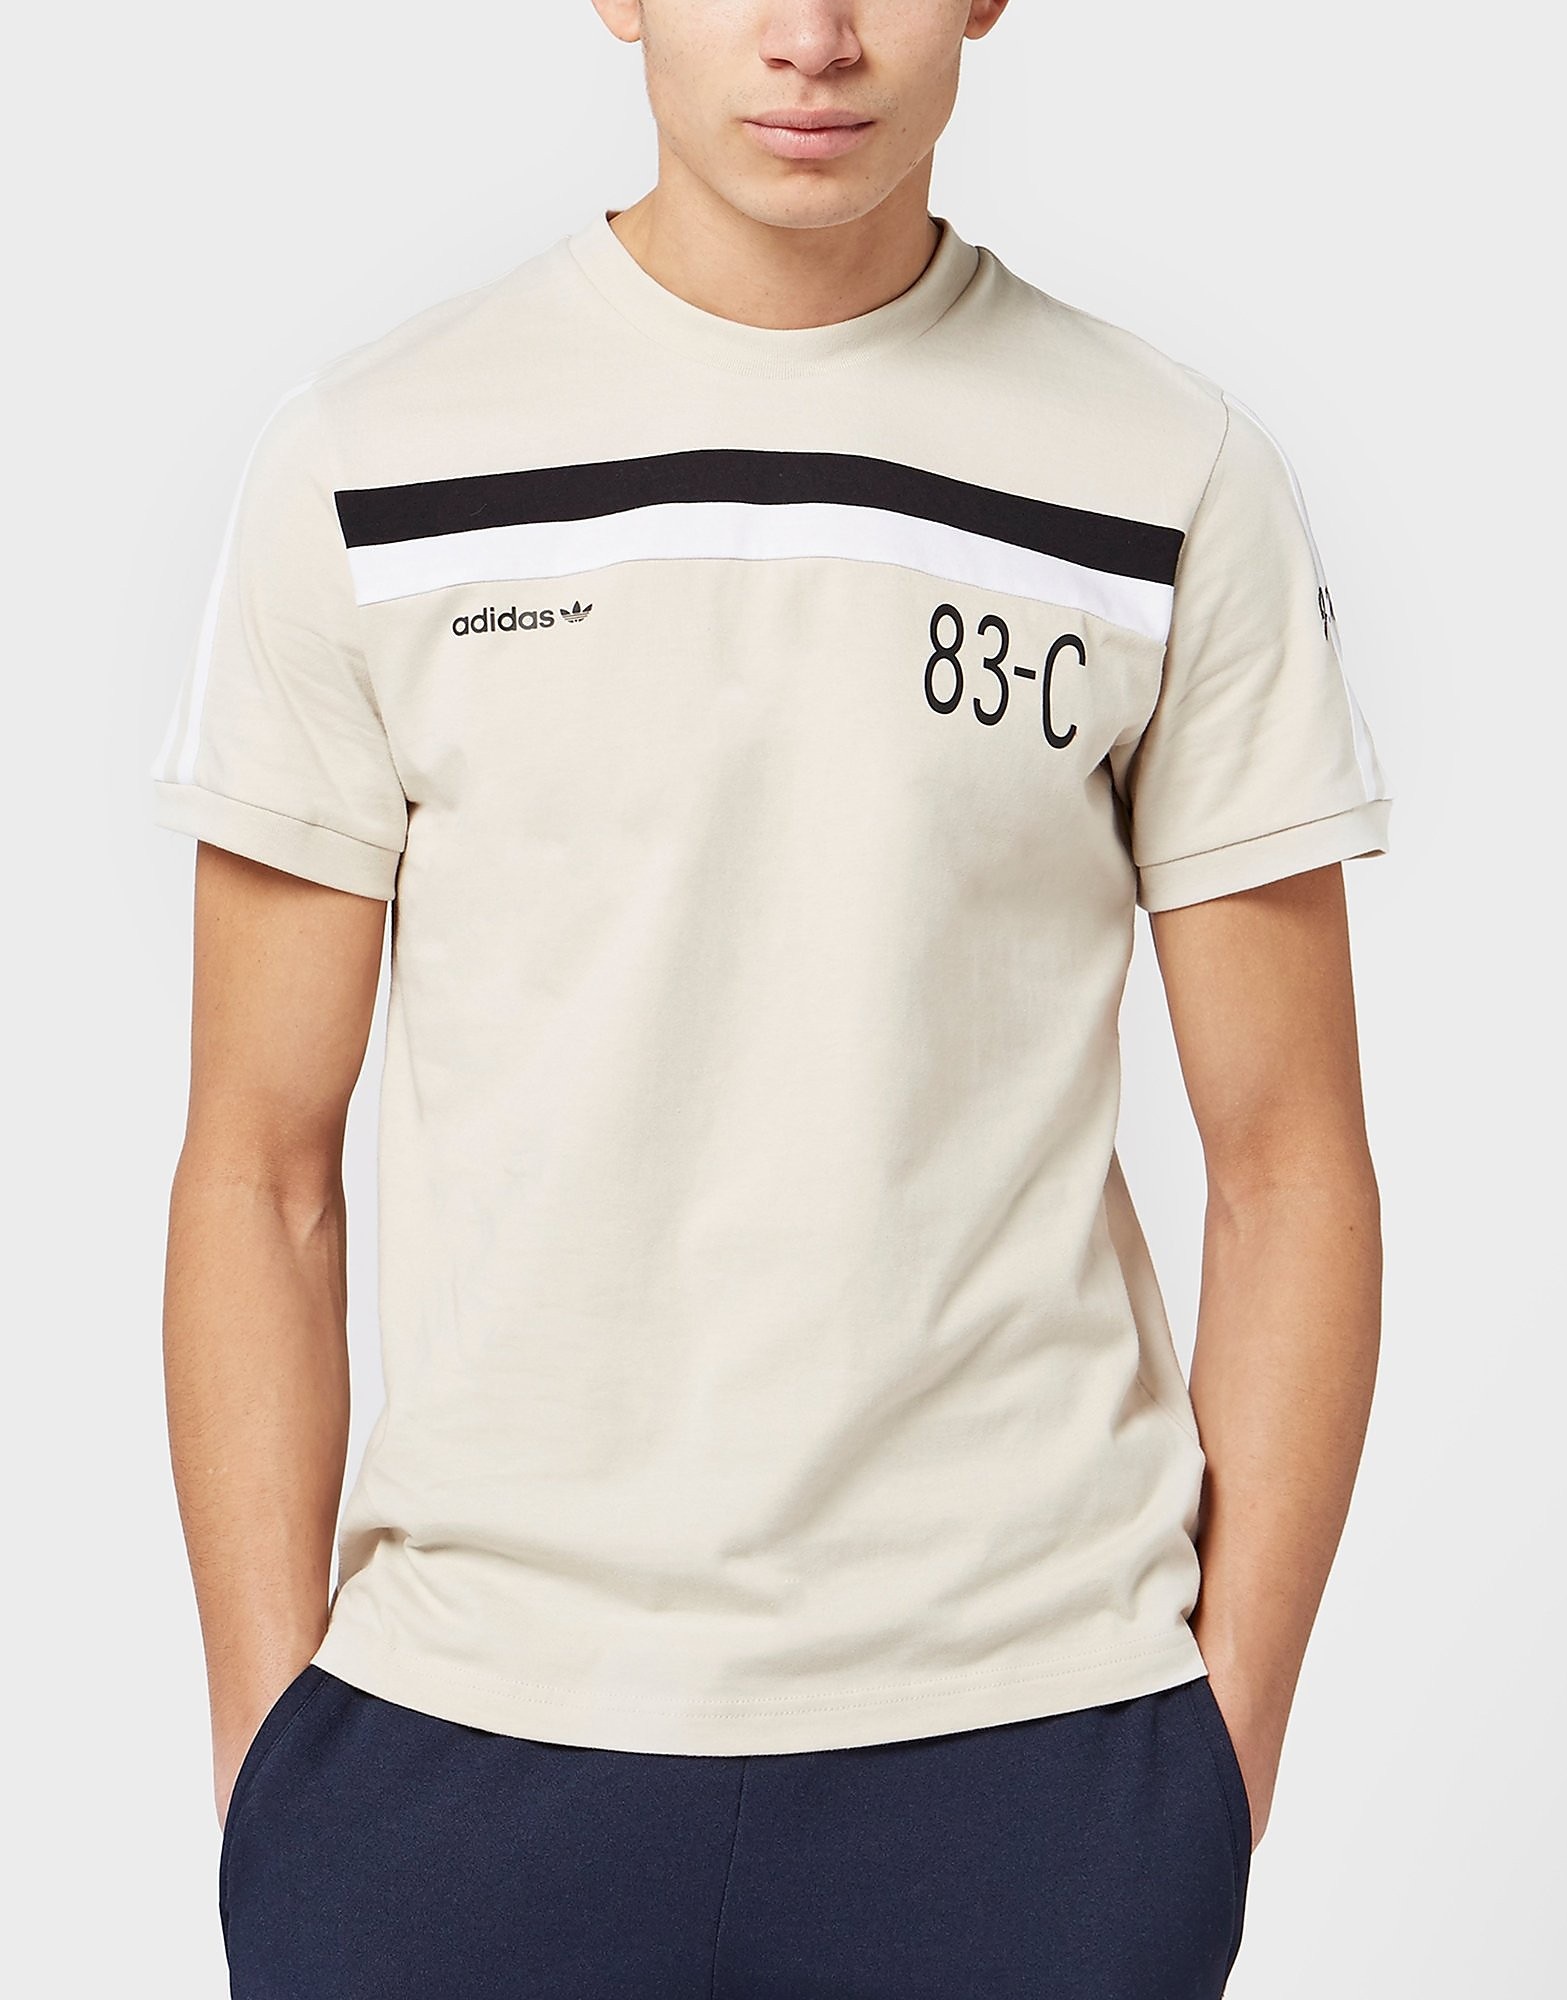 adidas Originals 83-C Crew Short Sleeve T-Shirt